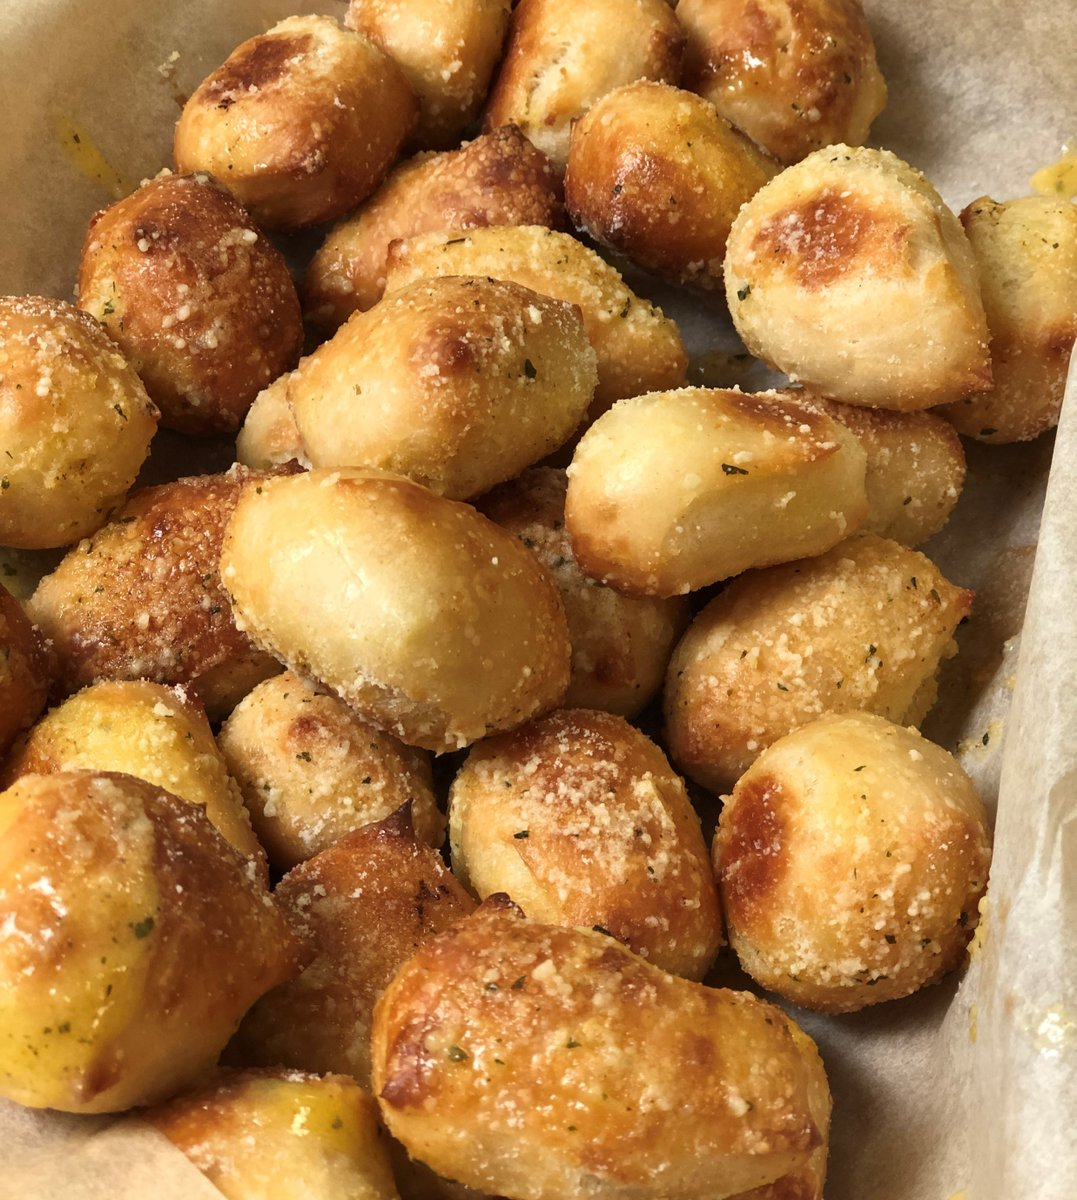 These Parmesan Bread Bites live in my head rent free. RT to put them in someone else's head too. https://t.co/ANAmyDVv5K